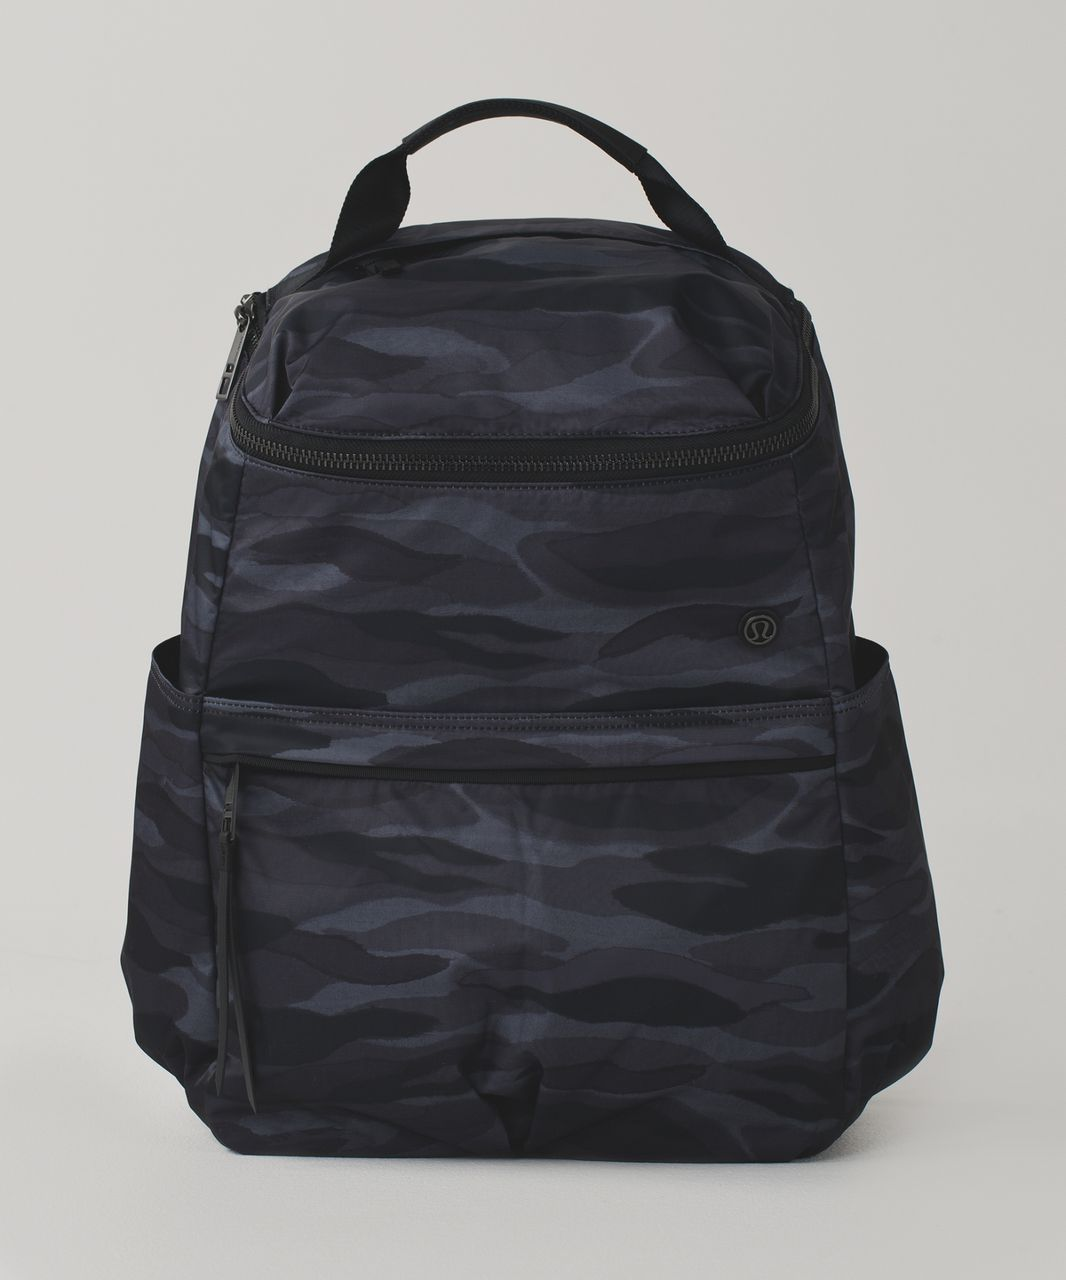 Lululemon Around Town Backpack - Mini Coast Camo Dark Slate Black